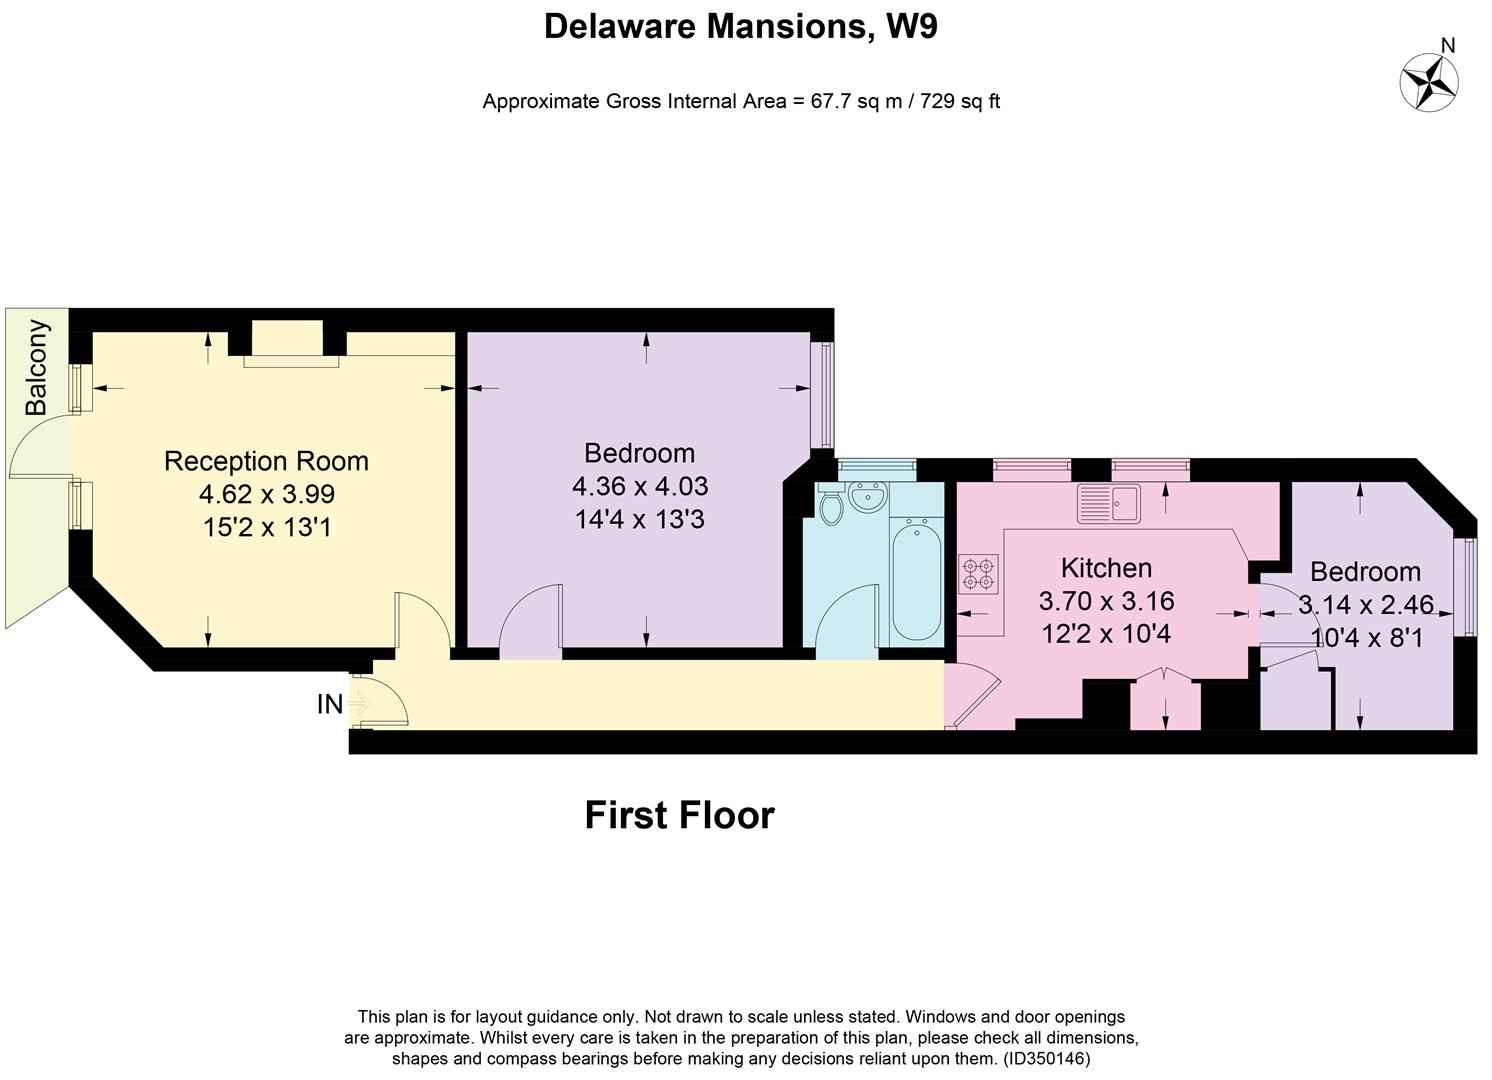 Property For Sale Delaware Mansions W